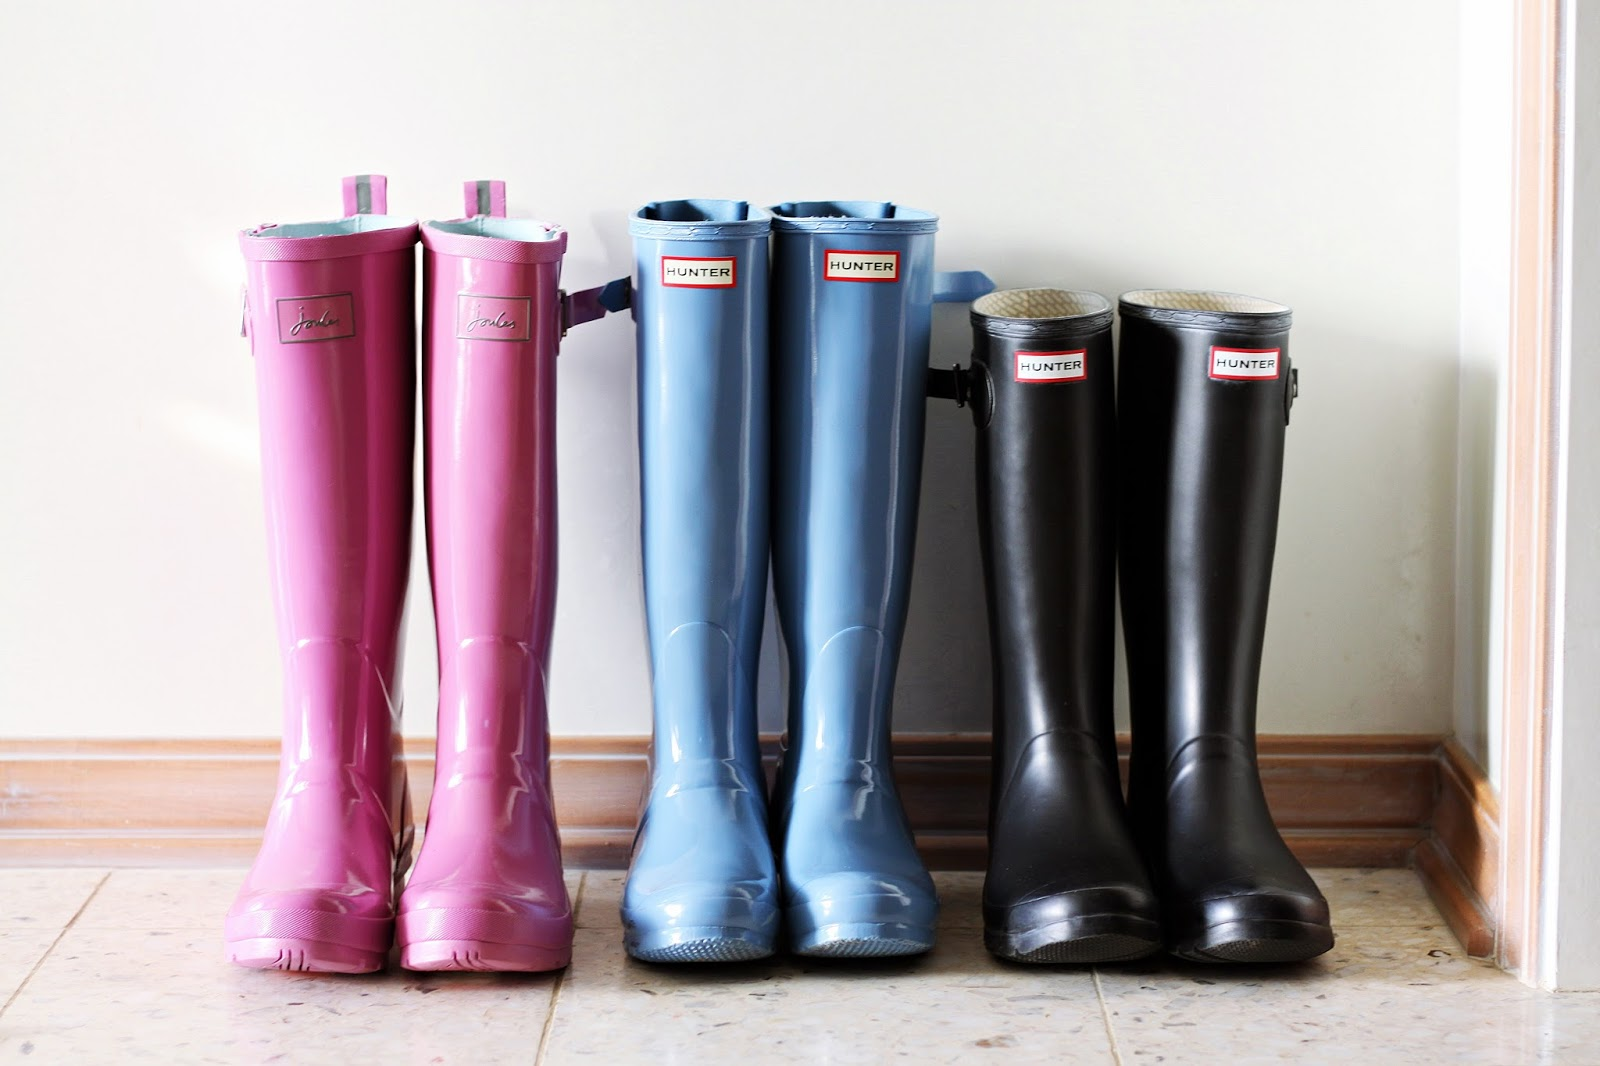 Hunter Boots Vs Joules Rain Boots For Wide Calves